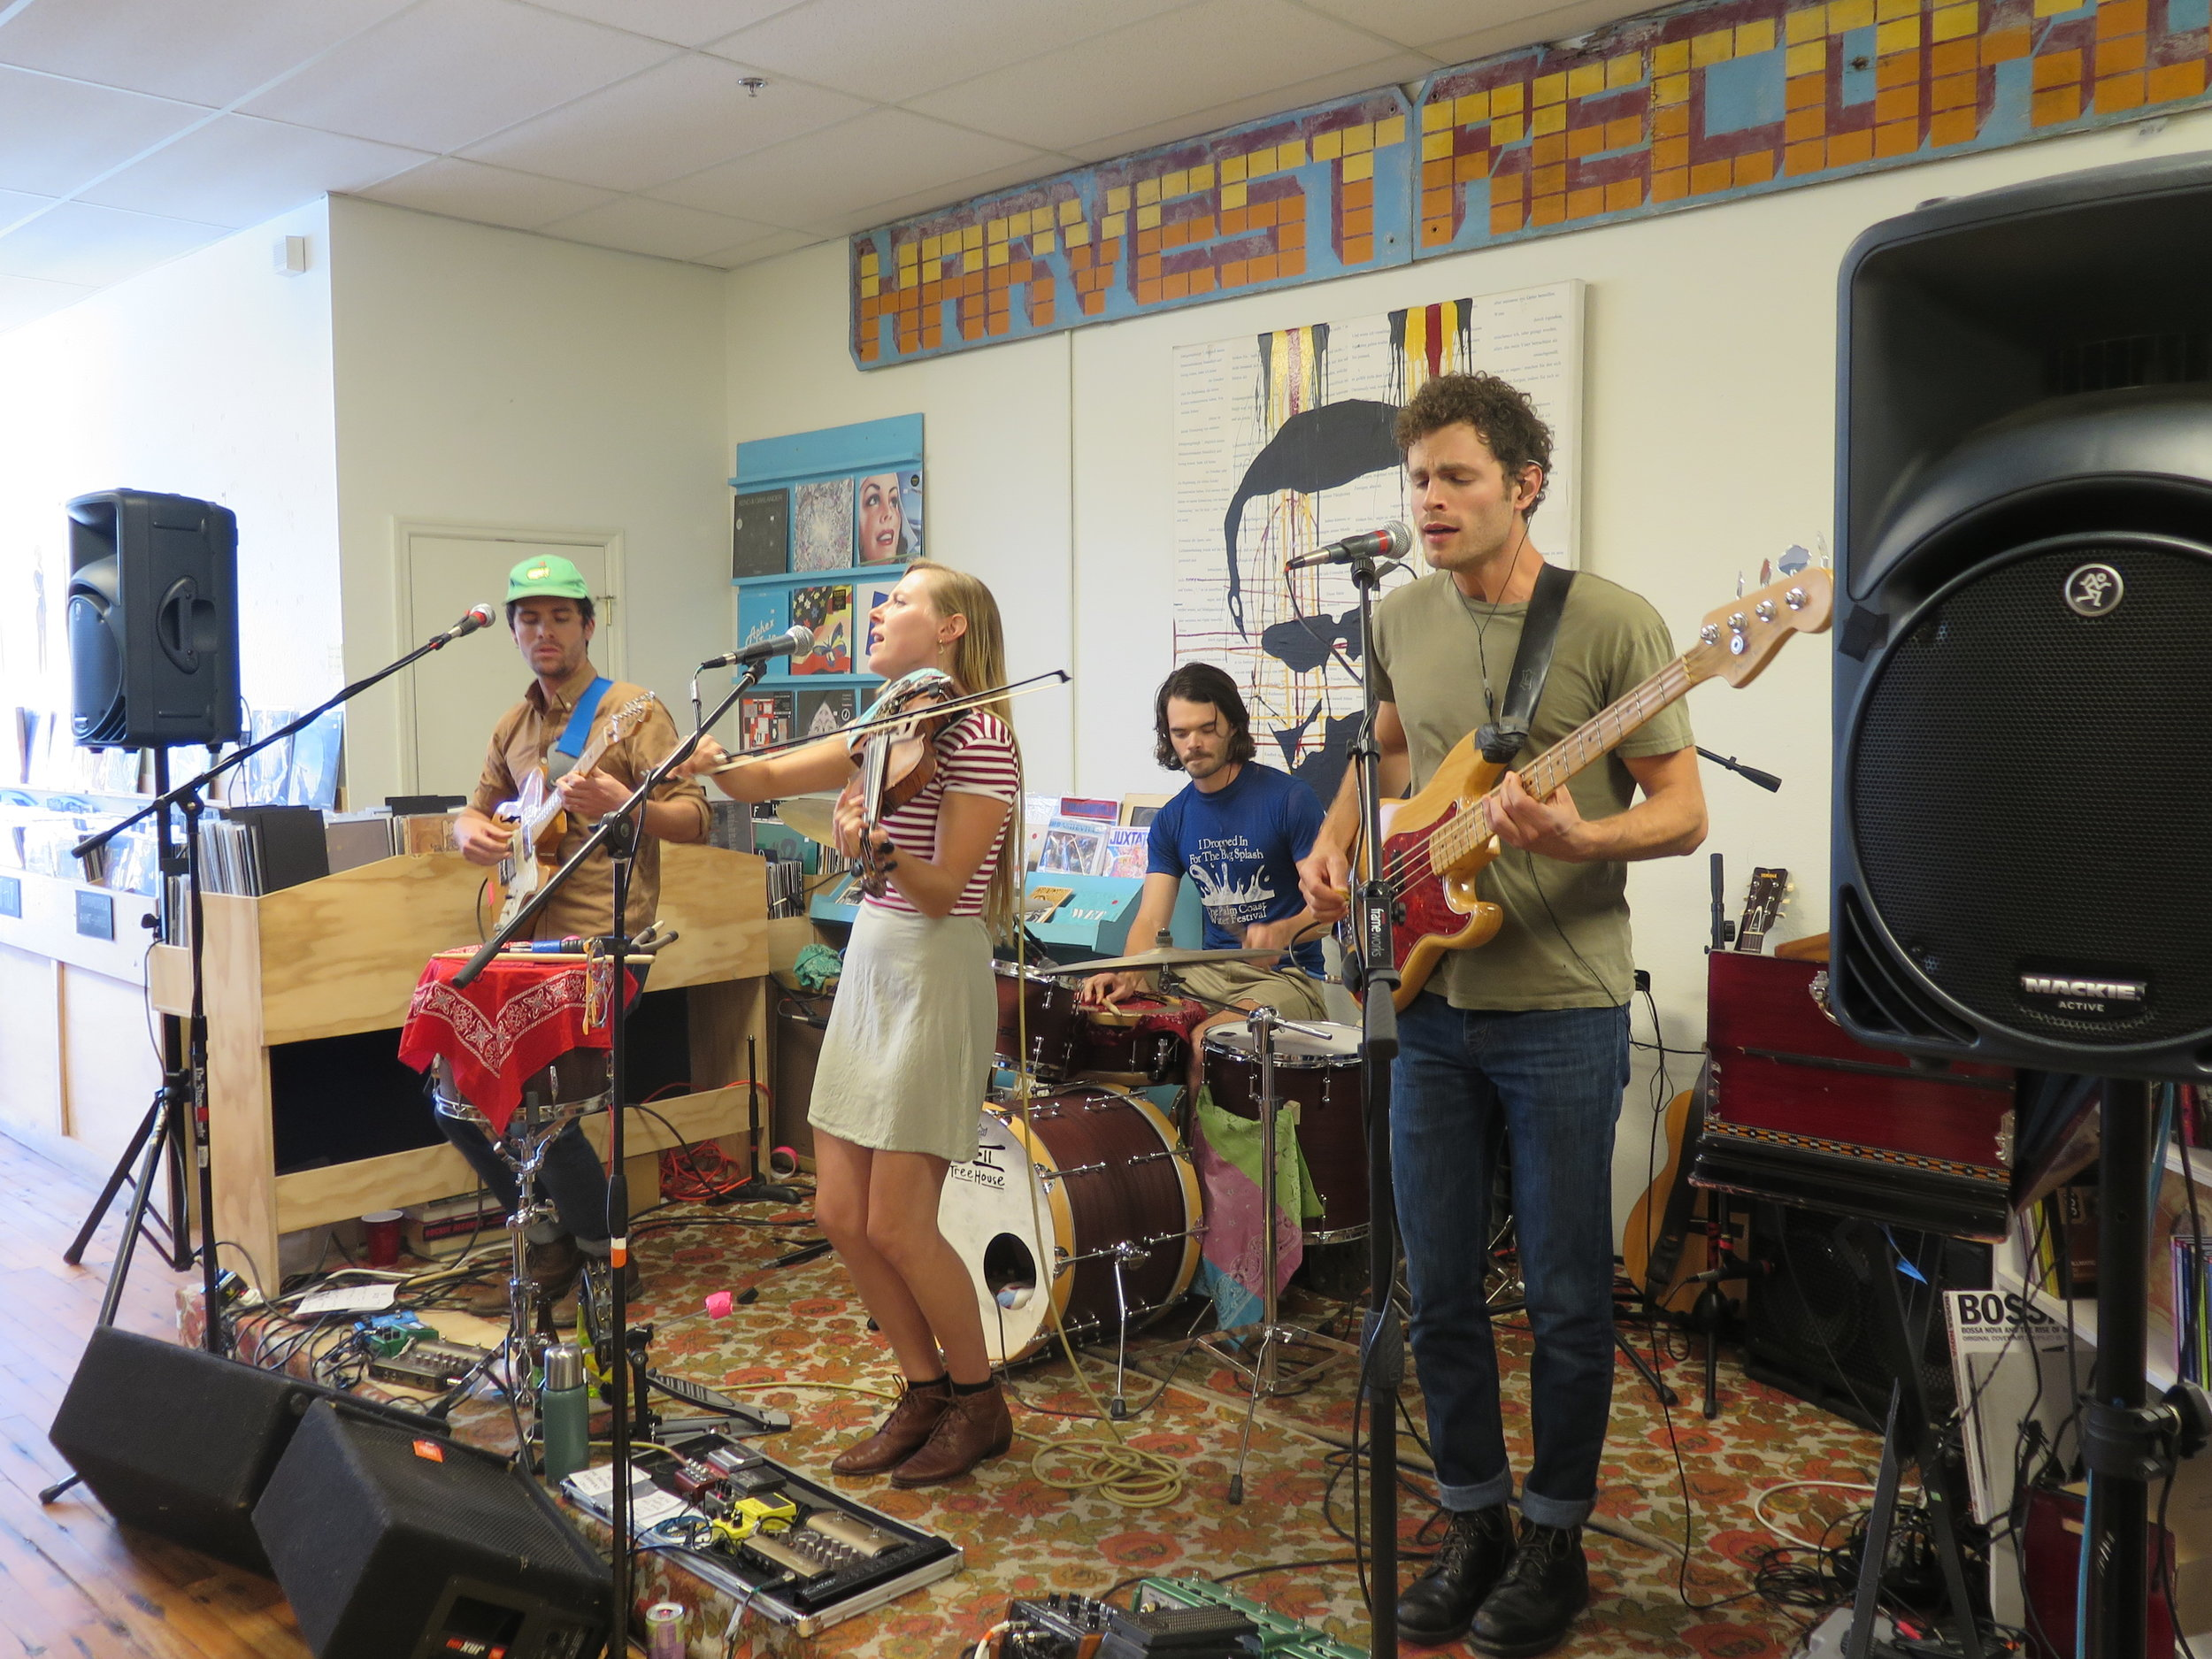 River Whyless 8-26-16 at Harvest Records (l to r): Ryan O'Keefe, Halli Anderson, Alex McWalters, Daniel Shearin